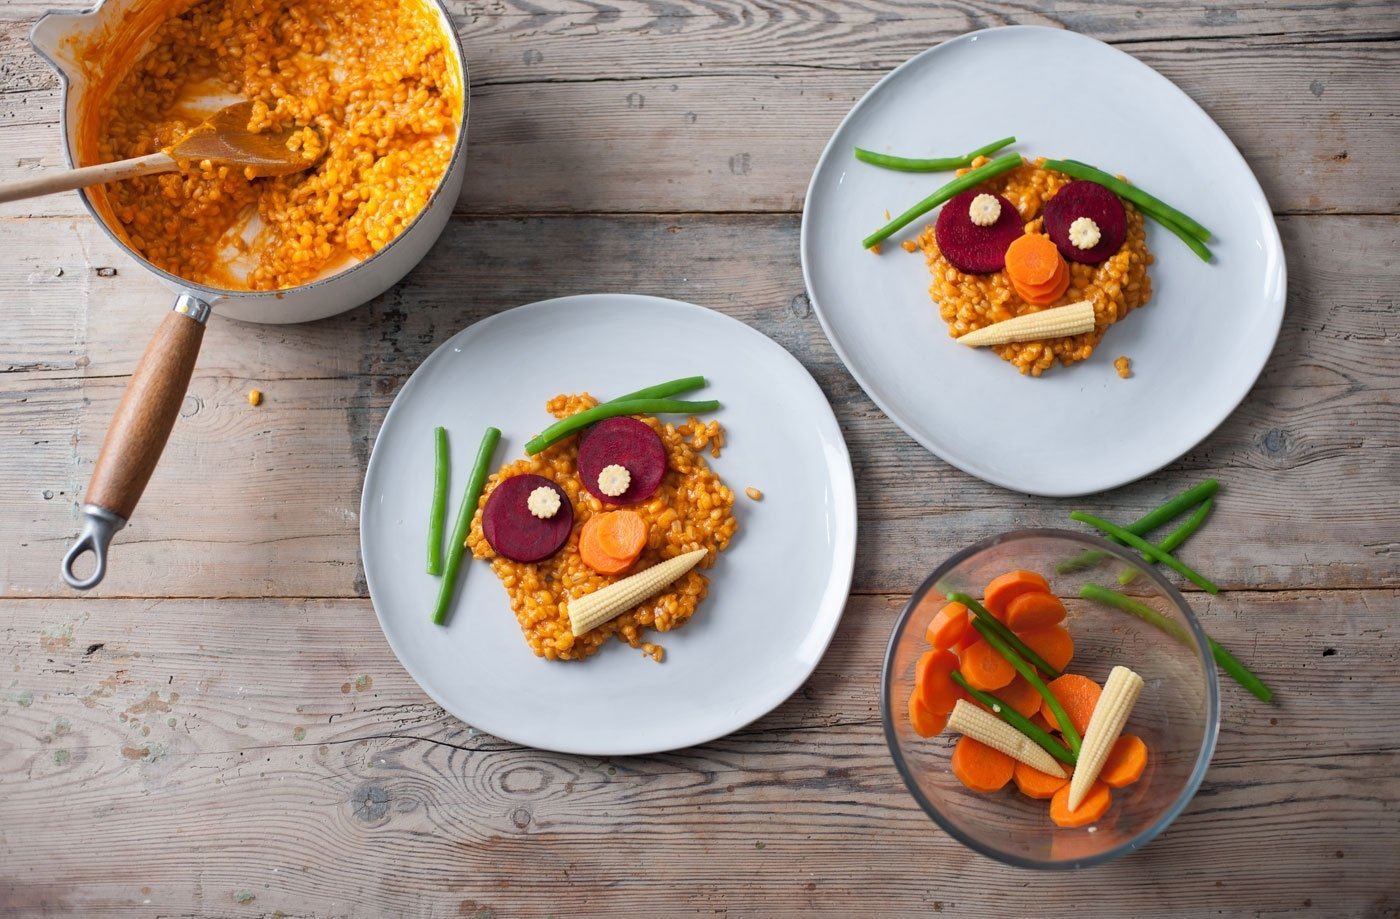 10 Stylish Good Dinner Ideas For Kids recipes for kids meal ideas for kids tesco real food 1 2020